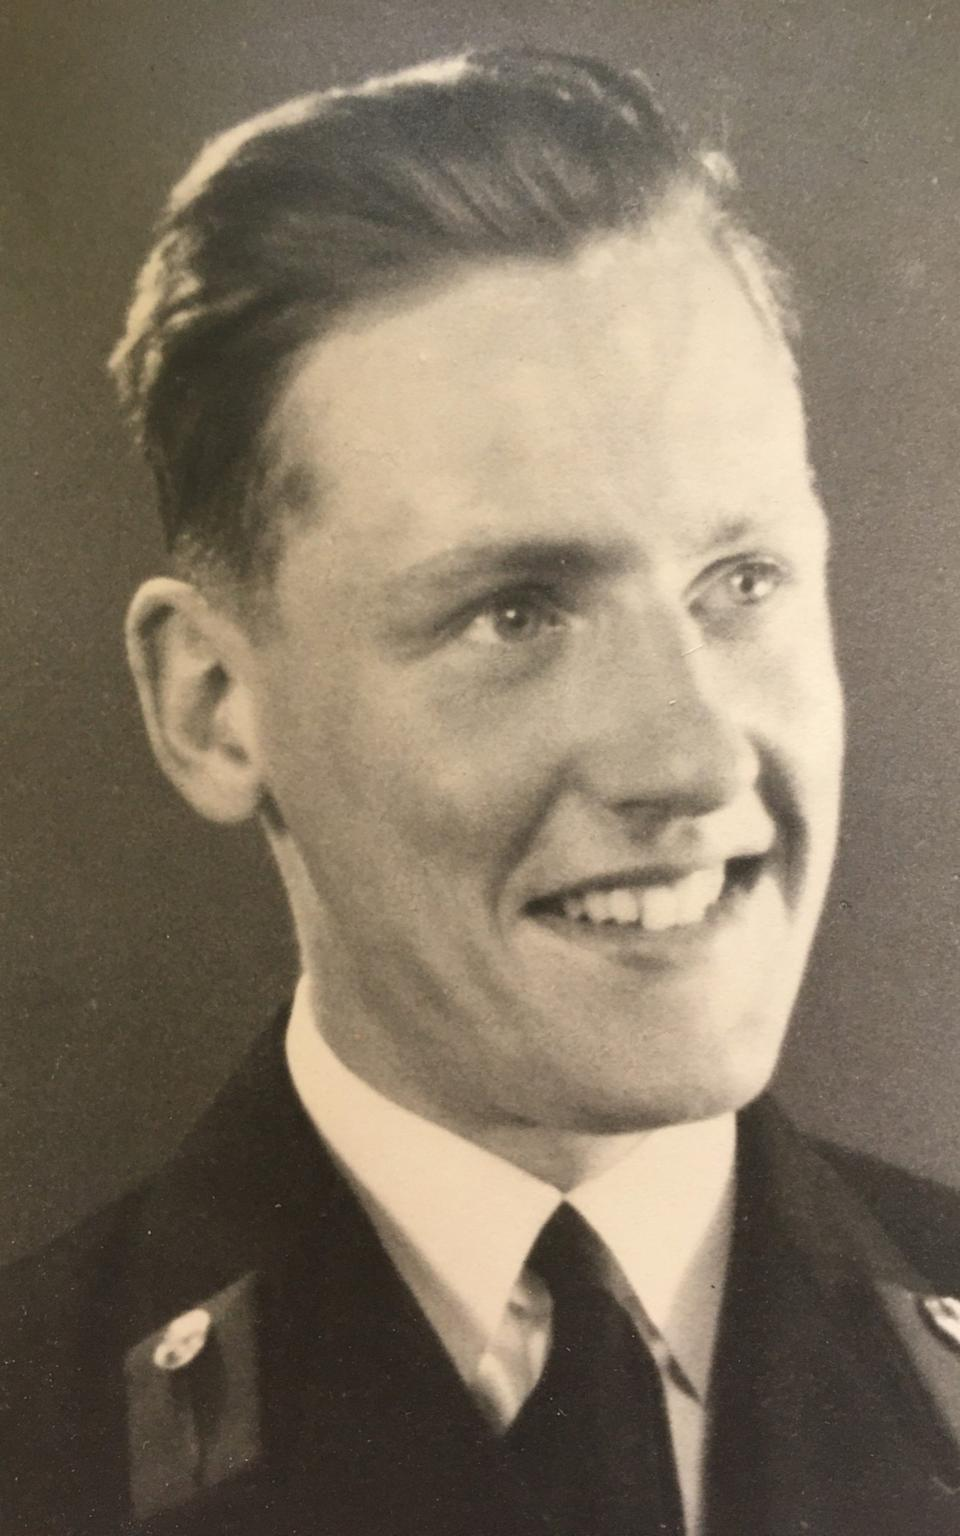 Jim Booth in the wartime years - family photo